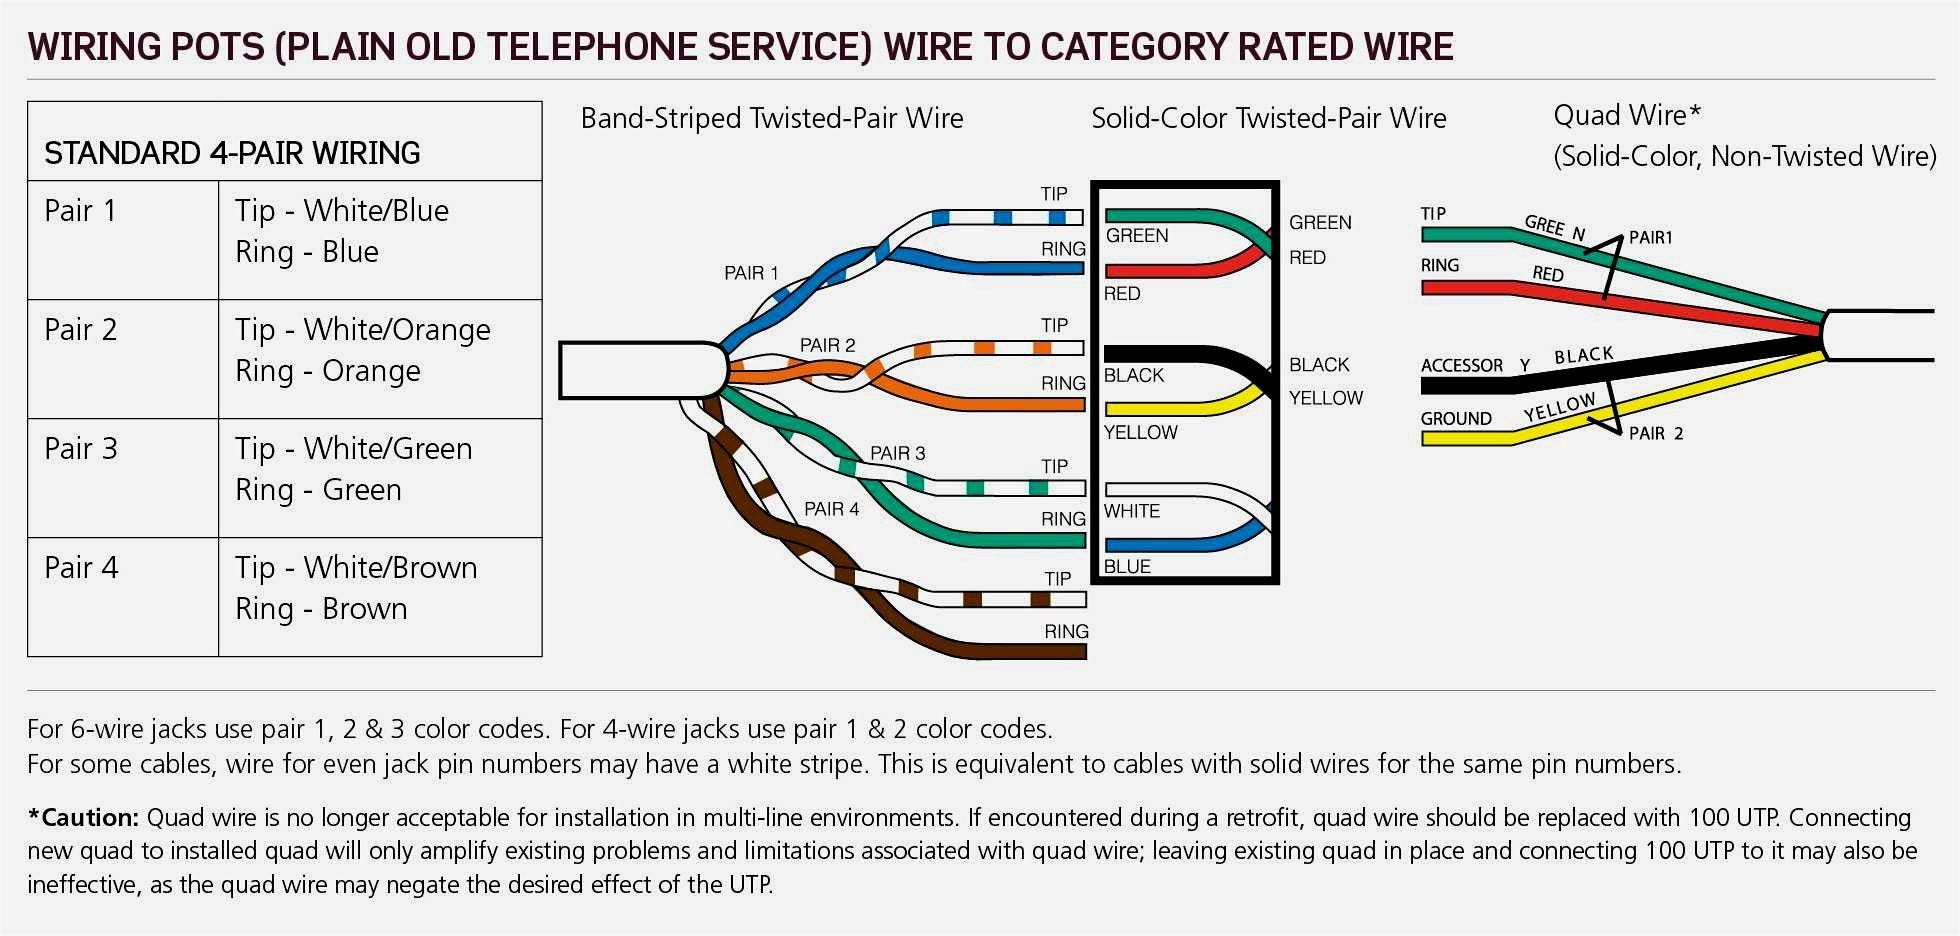 Wiring Diagram As Well Ether Cable Color Code As Well Cat 6 Wiring